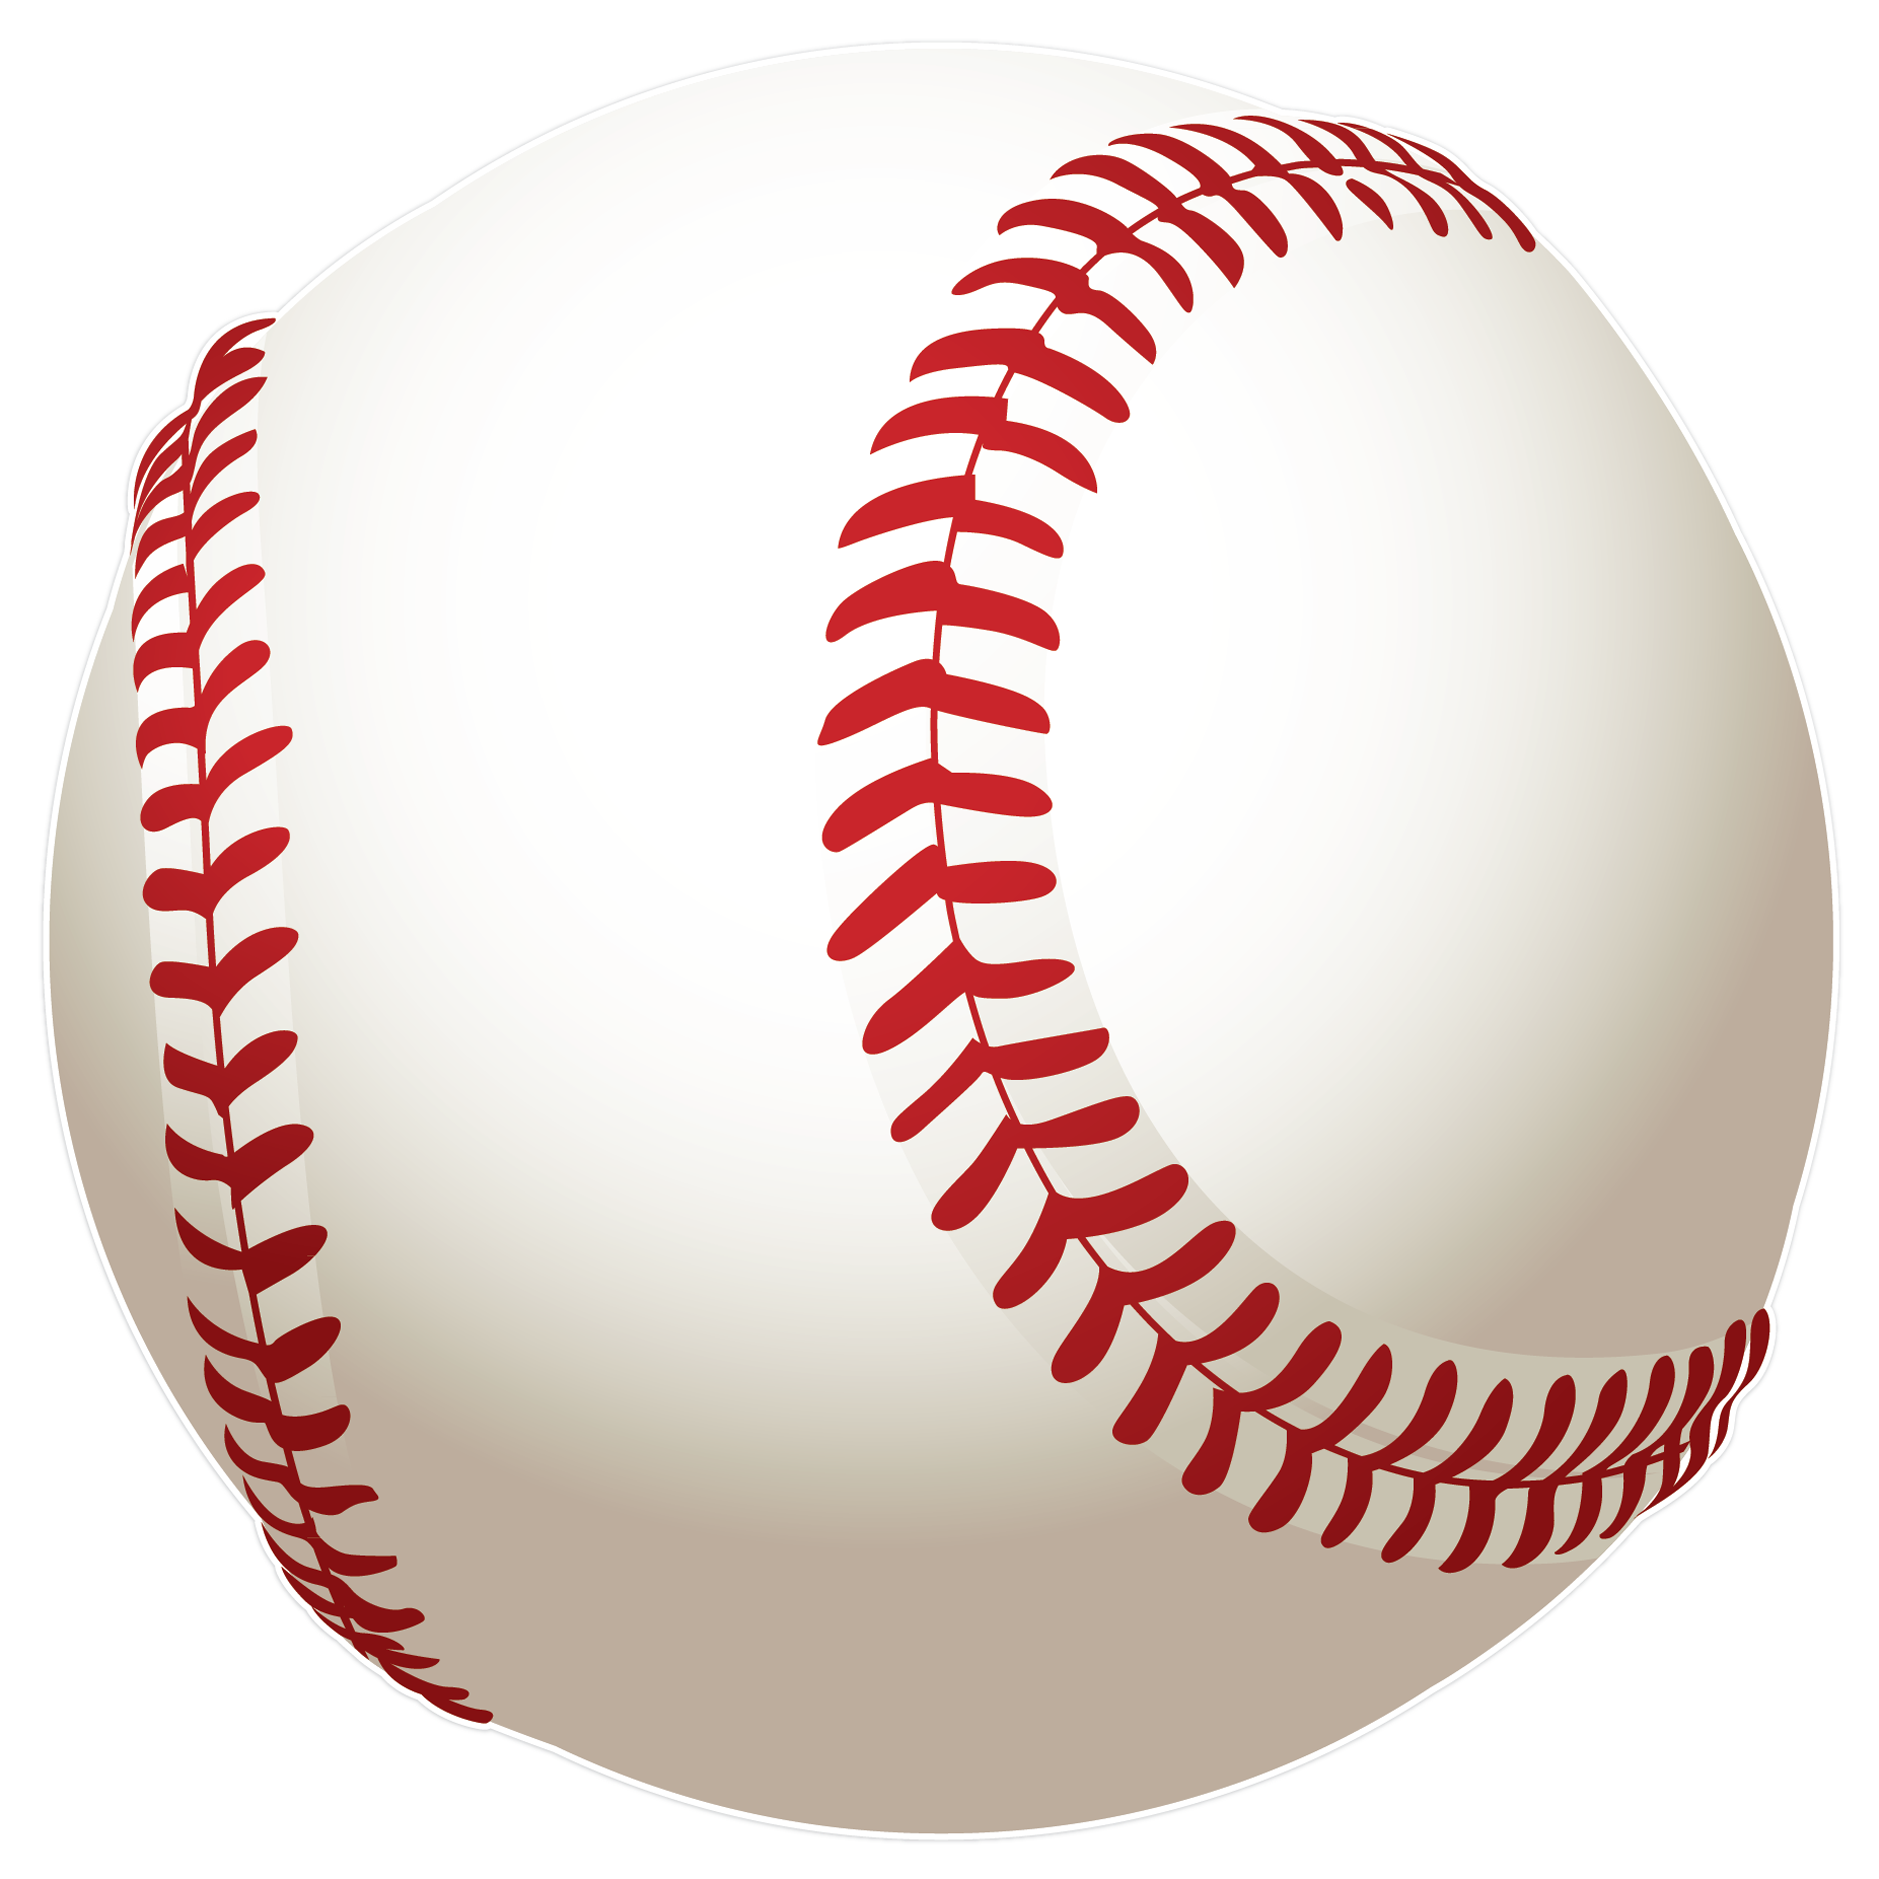 1879x1879 Background Clipart Baseball